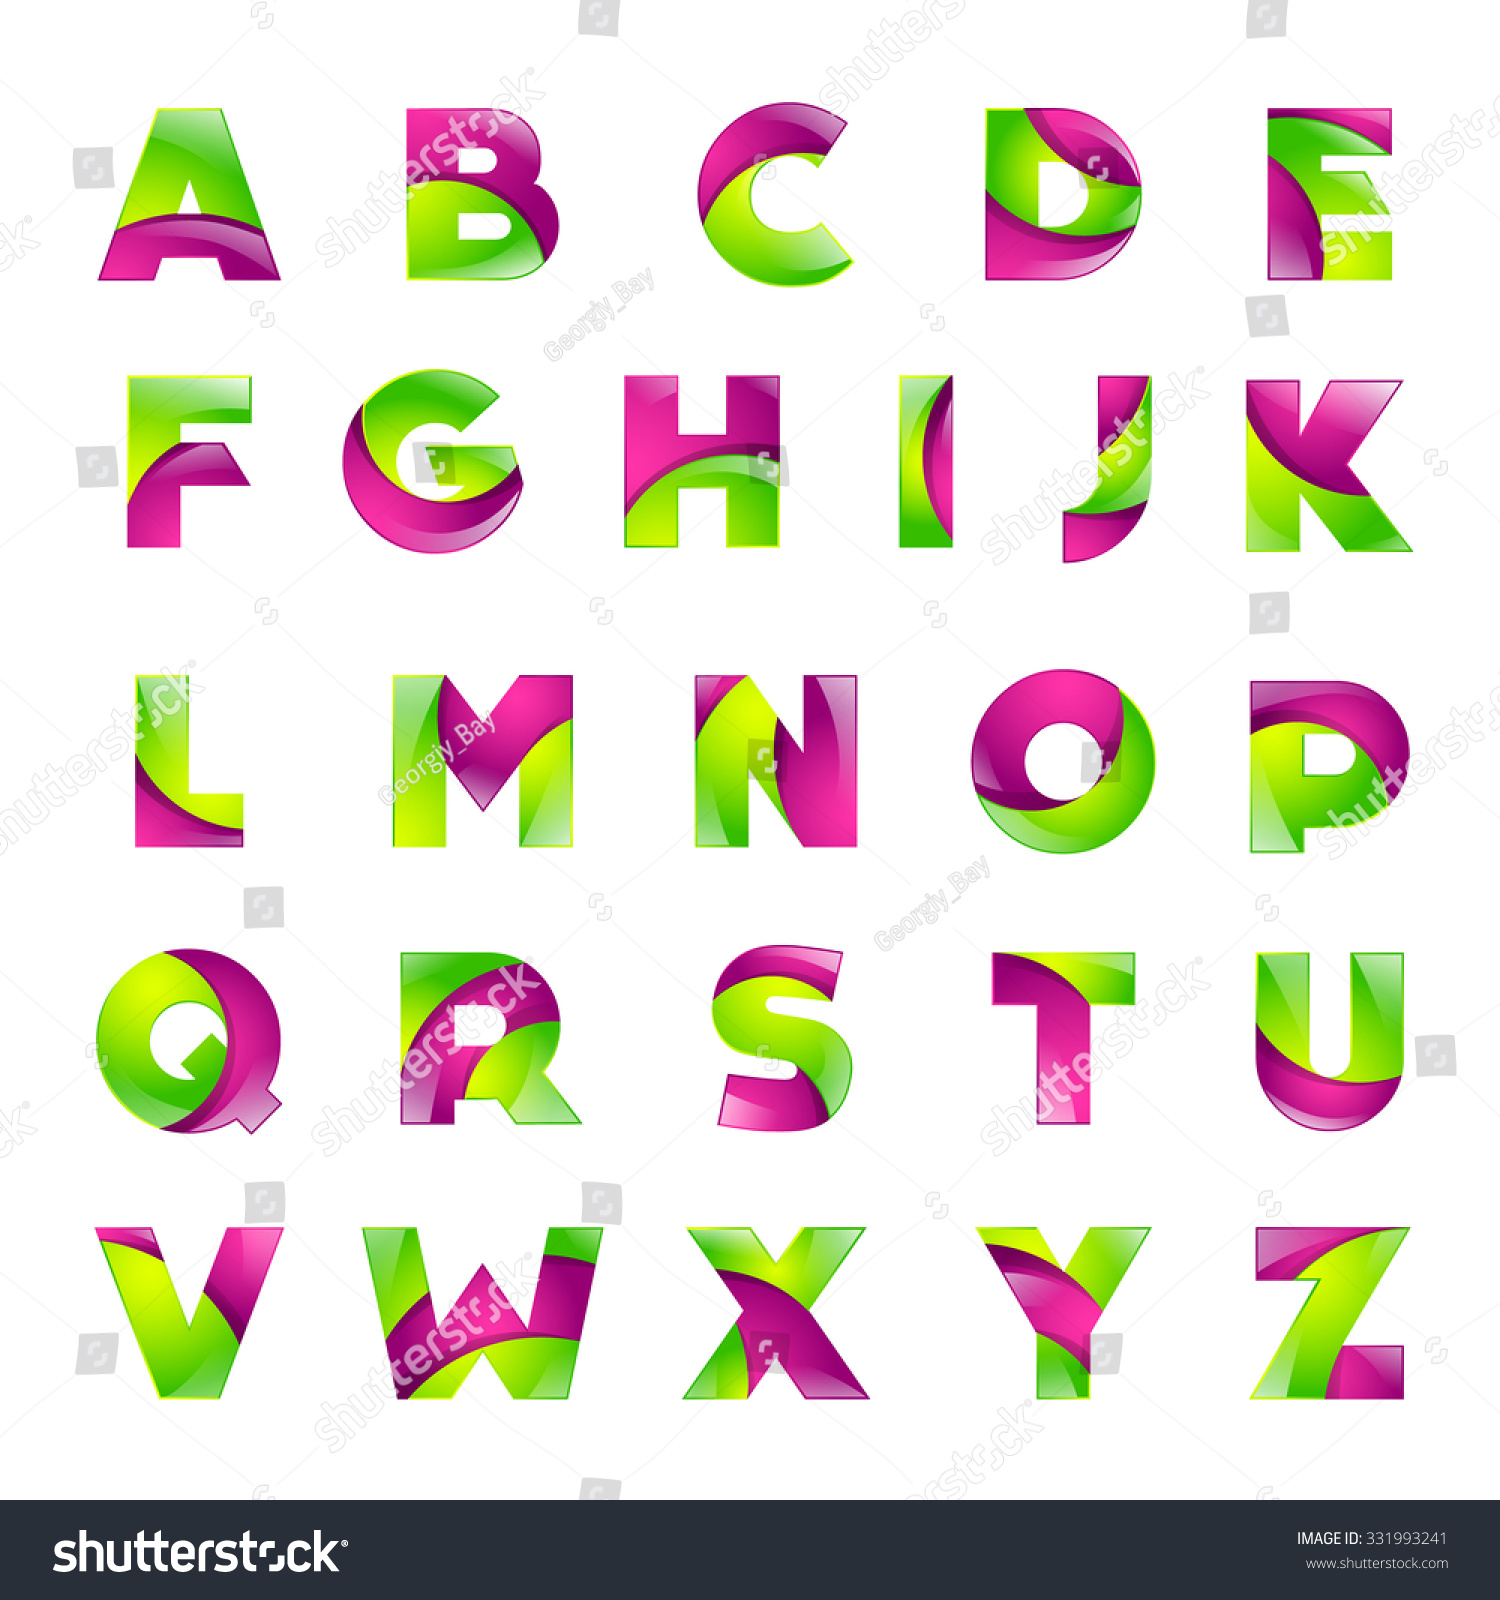 fun english alphabet green and pink color letters set font style design template elements for application